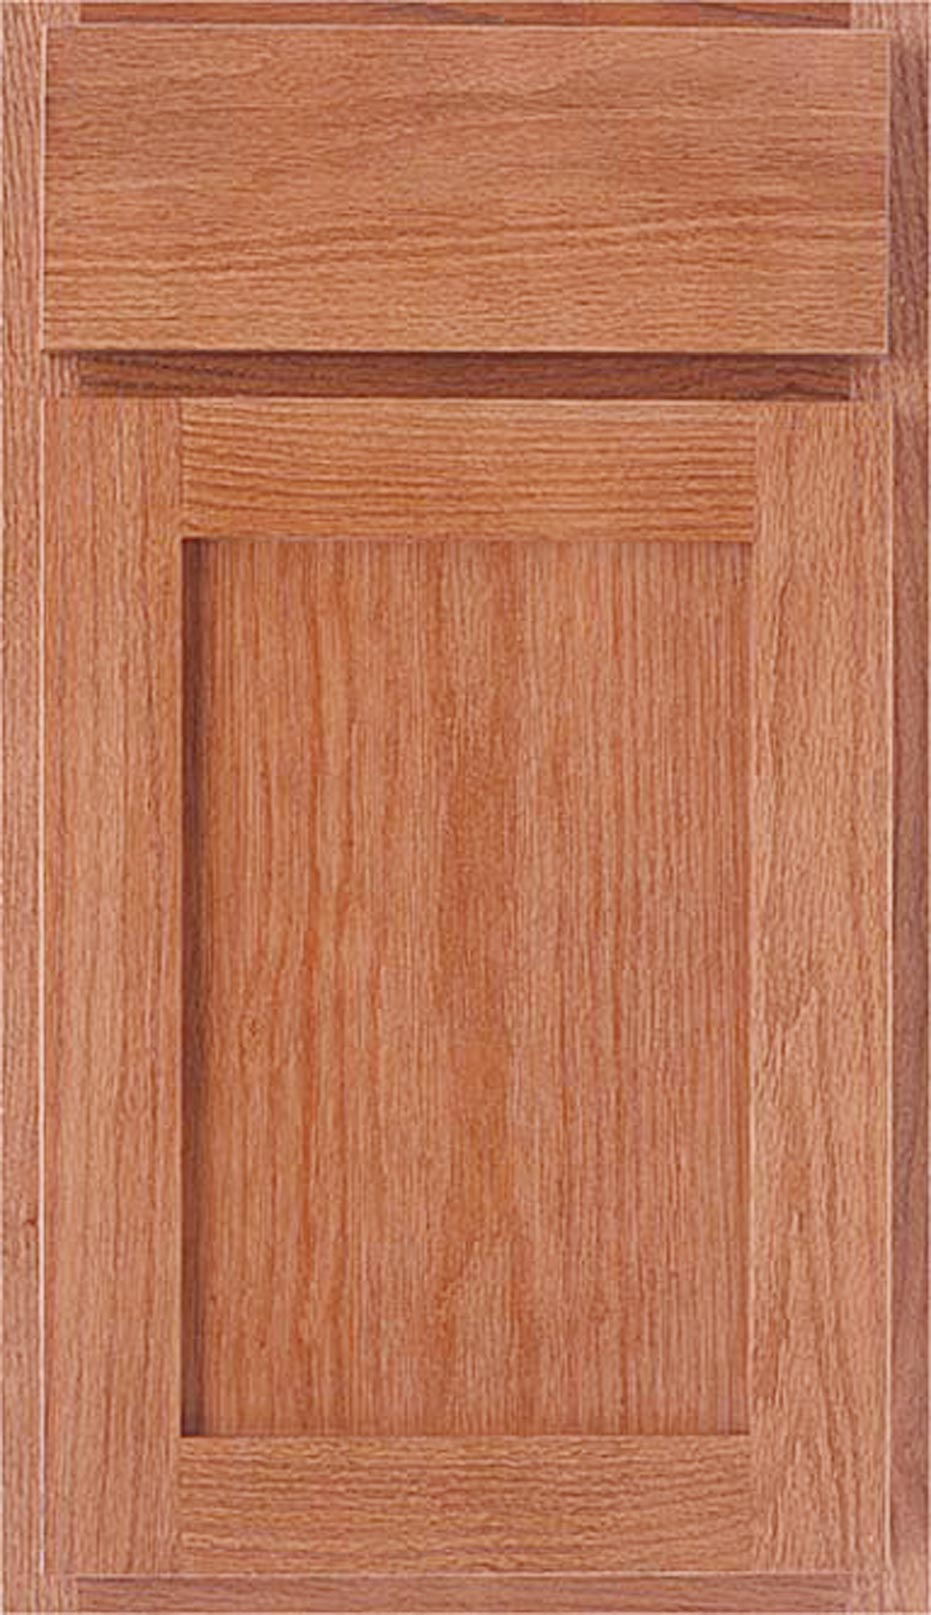 Shaker style kitchen cabinet doors 2 spotlats for Kitchen cabinets doors